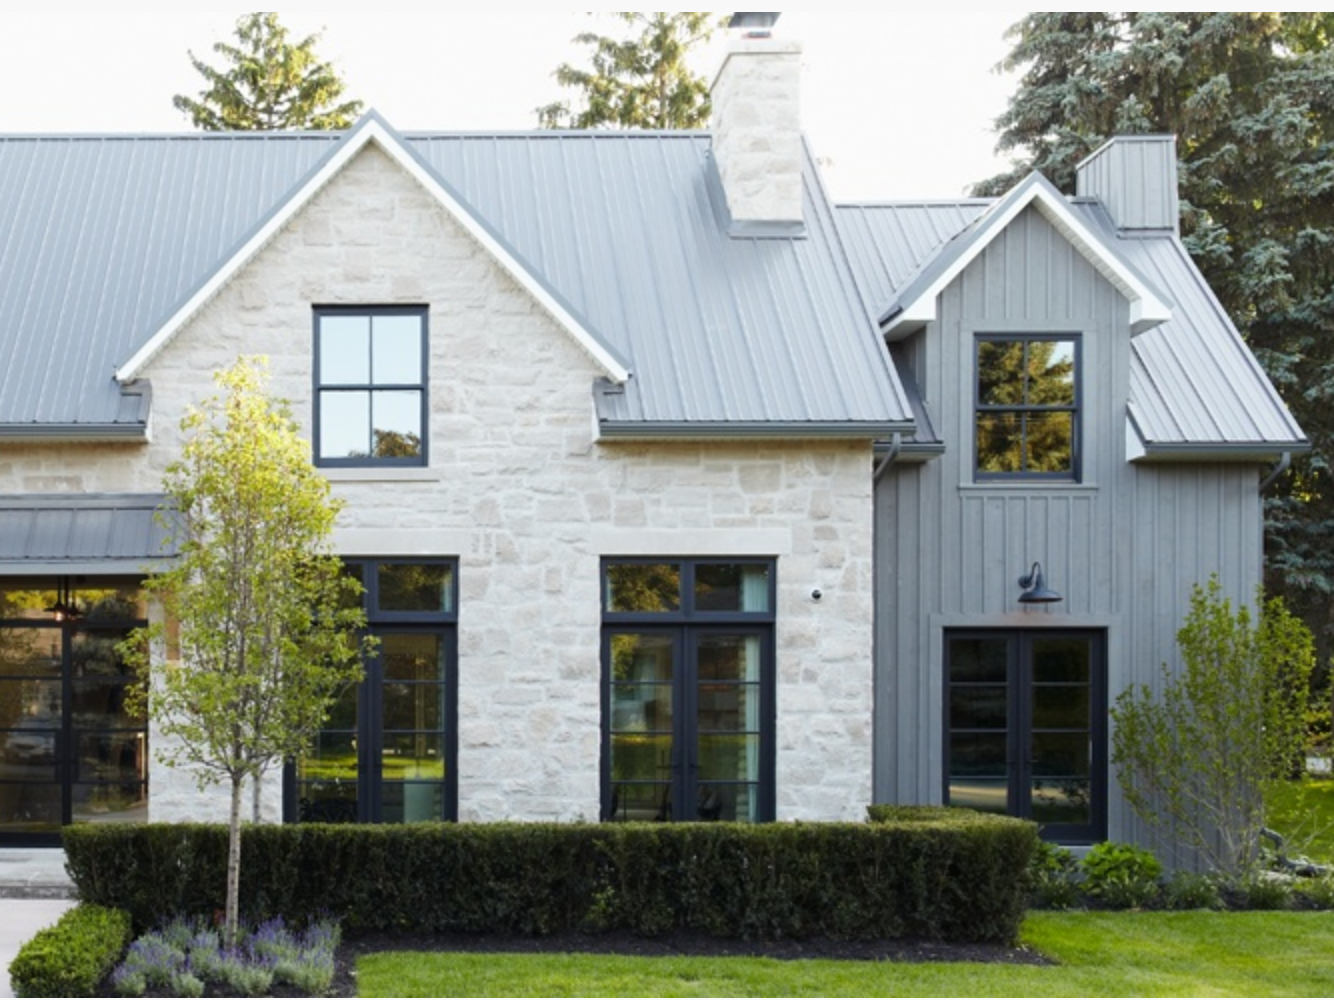 Black or dark grey windows and gutters on a white house description from i - Dark grey exterior house paint concept ...